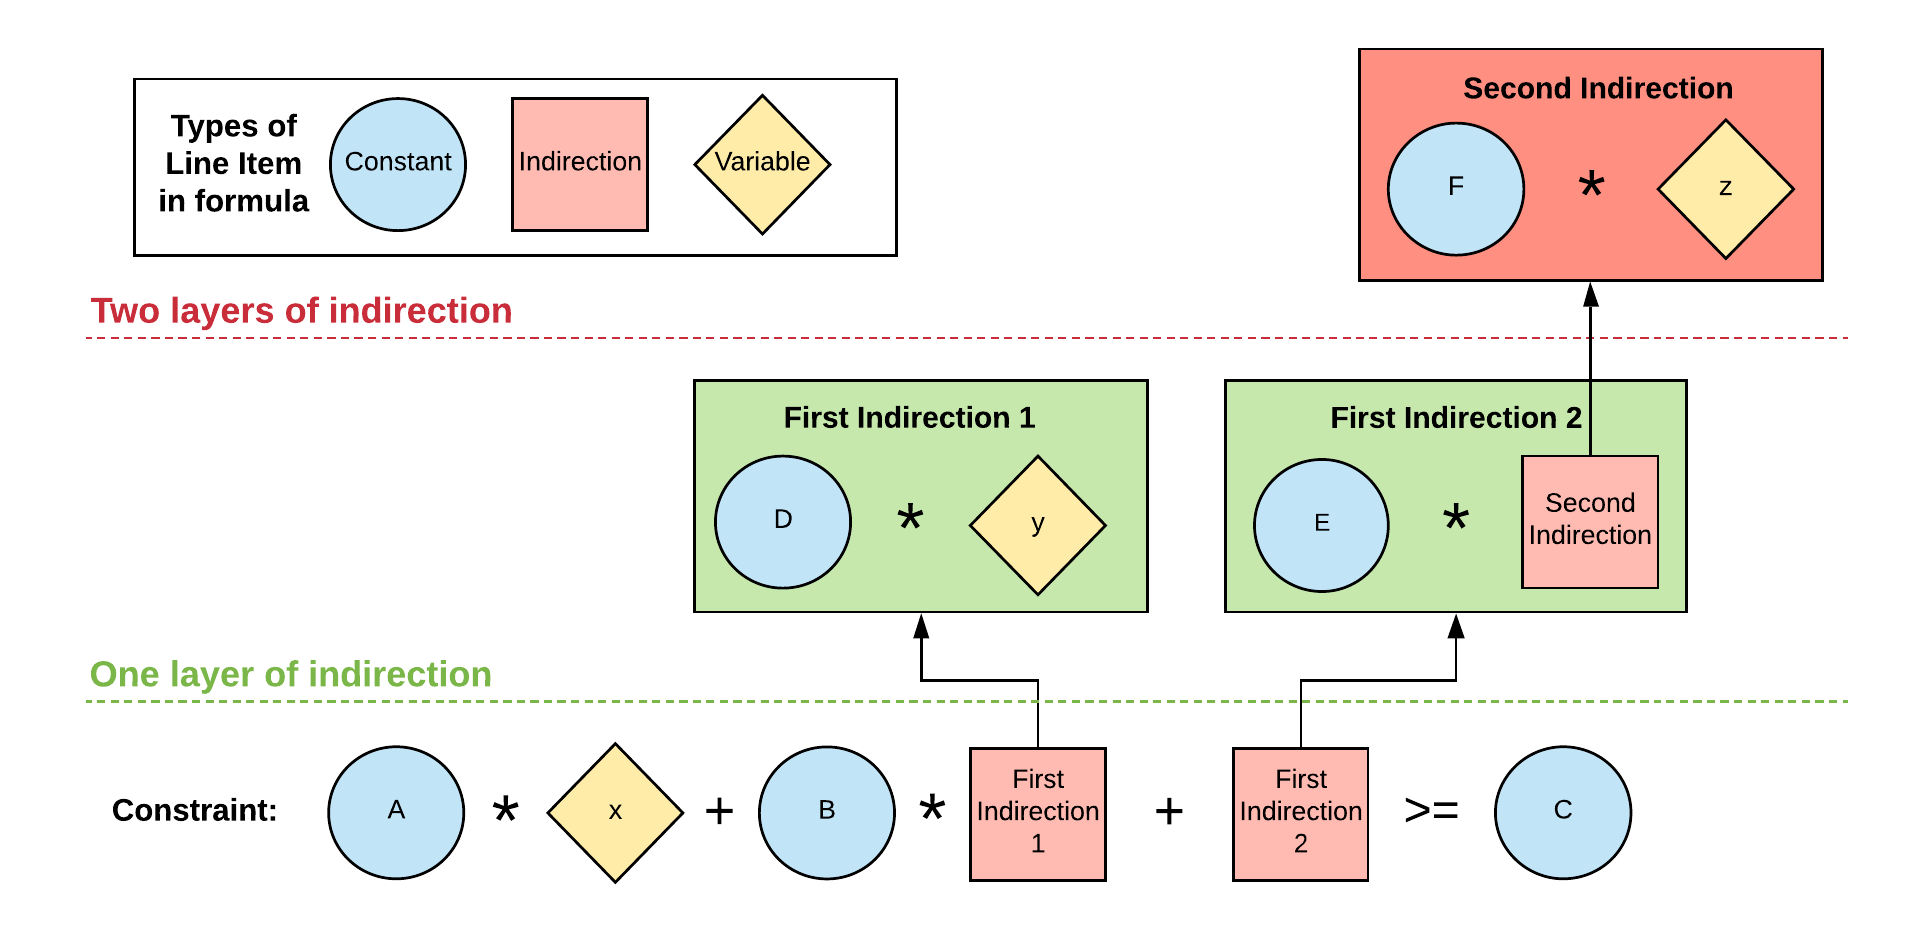 Chart shows an example of a line item with two levels of indirection. A constraint formula refers to a line item that contains a formula, which itself makes reference to a line item containing a variable. This final line item has two levels of indirection.